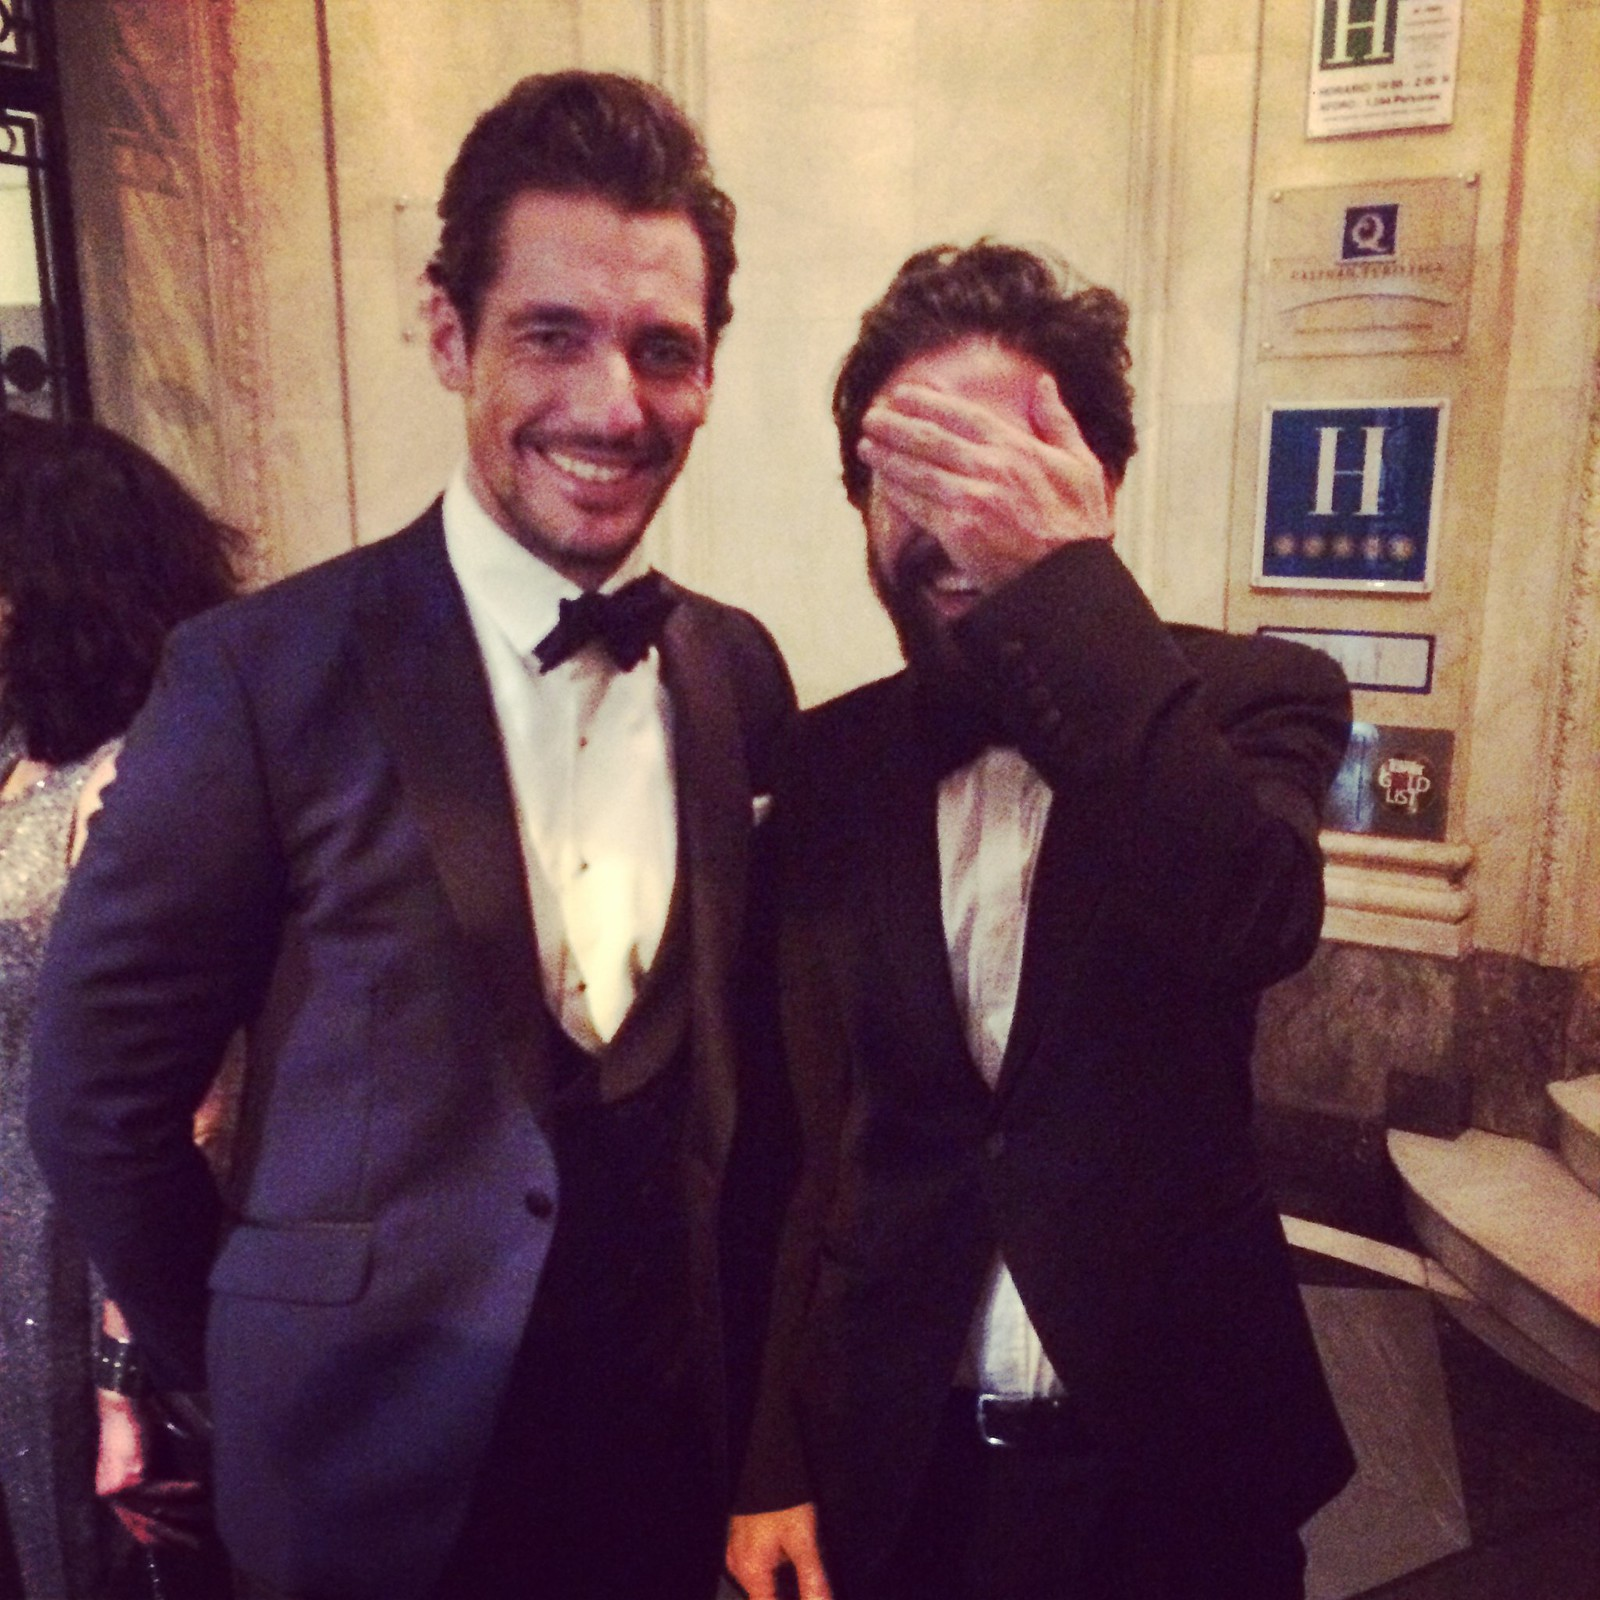 _miguel_carrizo_david_gandy_premios_gq_hombres_del_año_men_of_the_year_